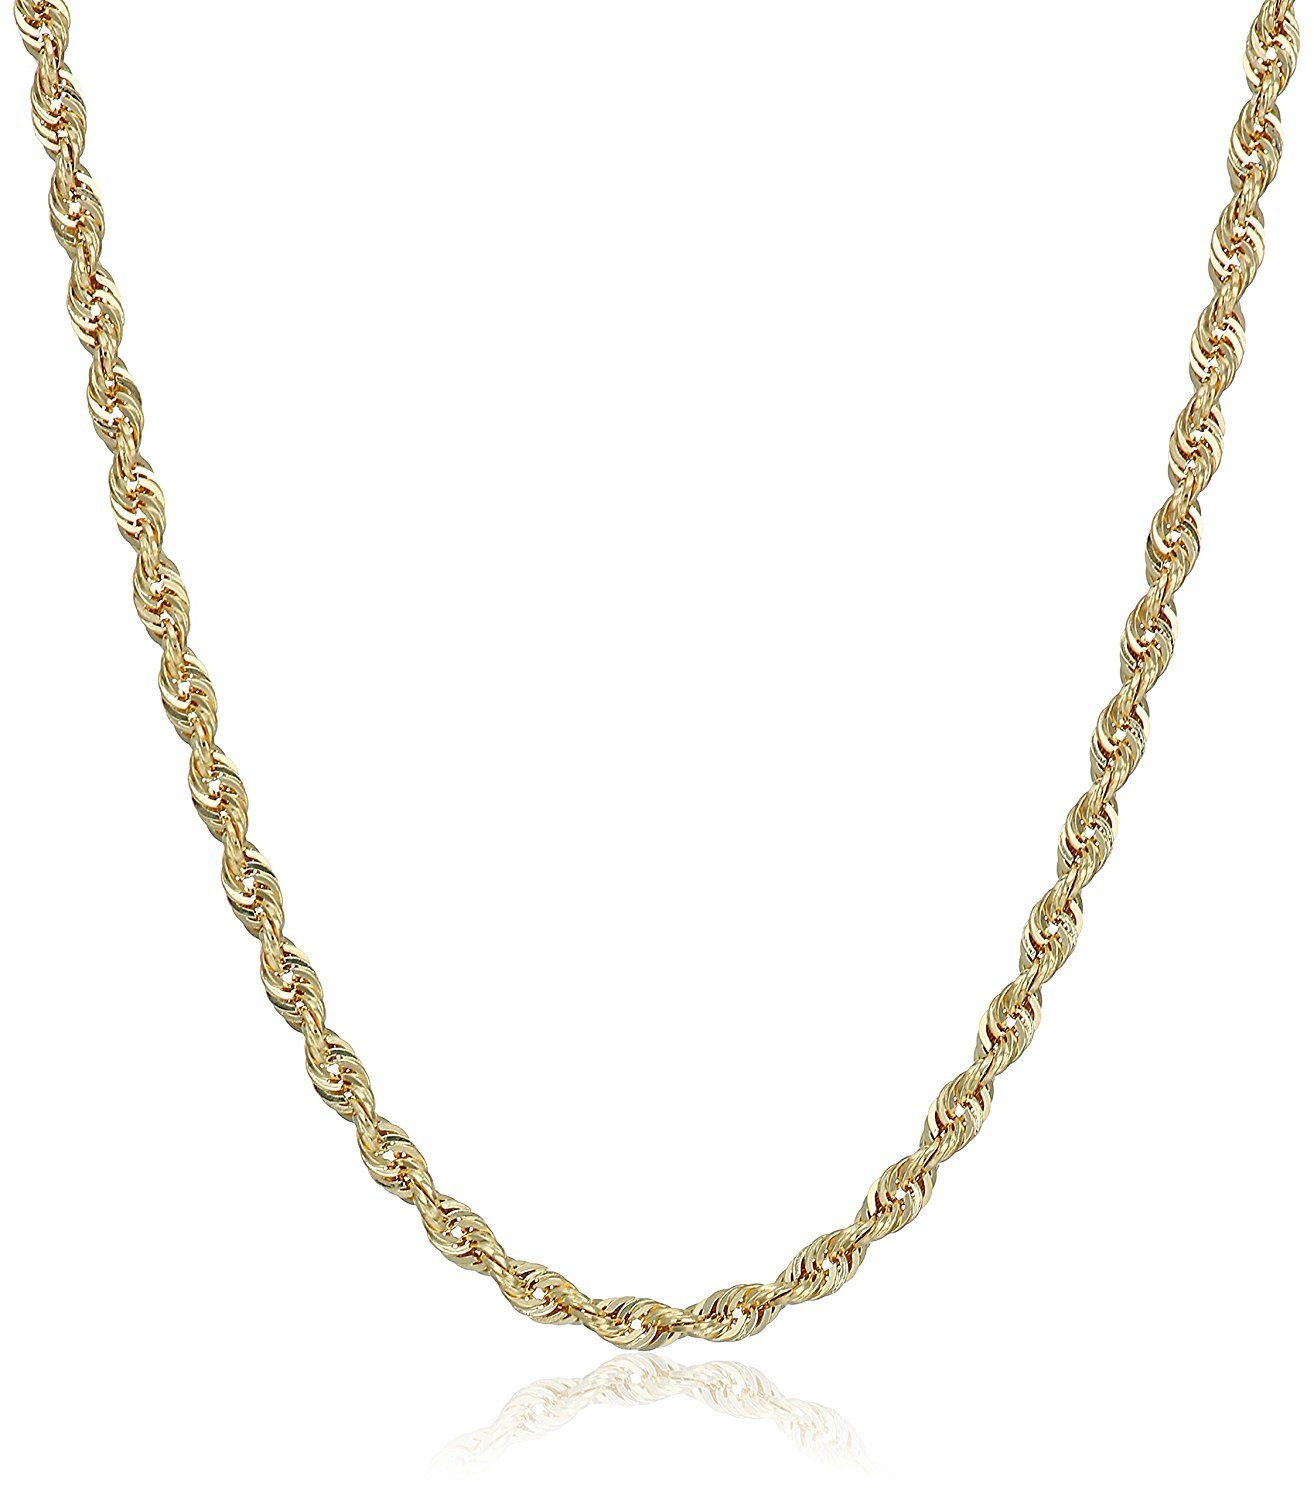 10K Gold 3.0MM Diamond Cut Rope Chain Necklace Unisex Sizes 7''-30'' (26)